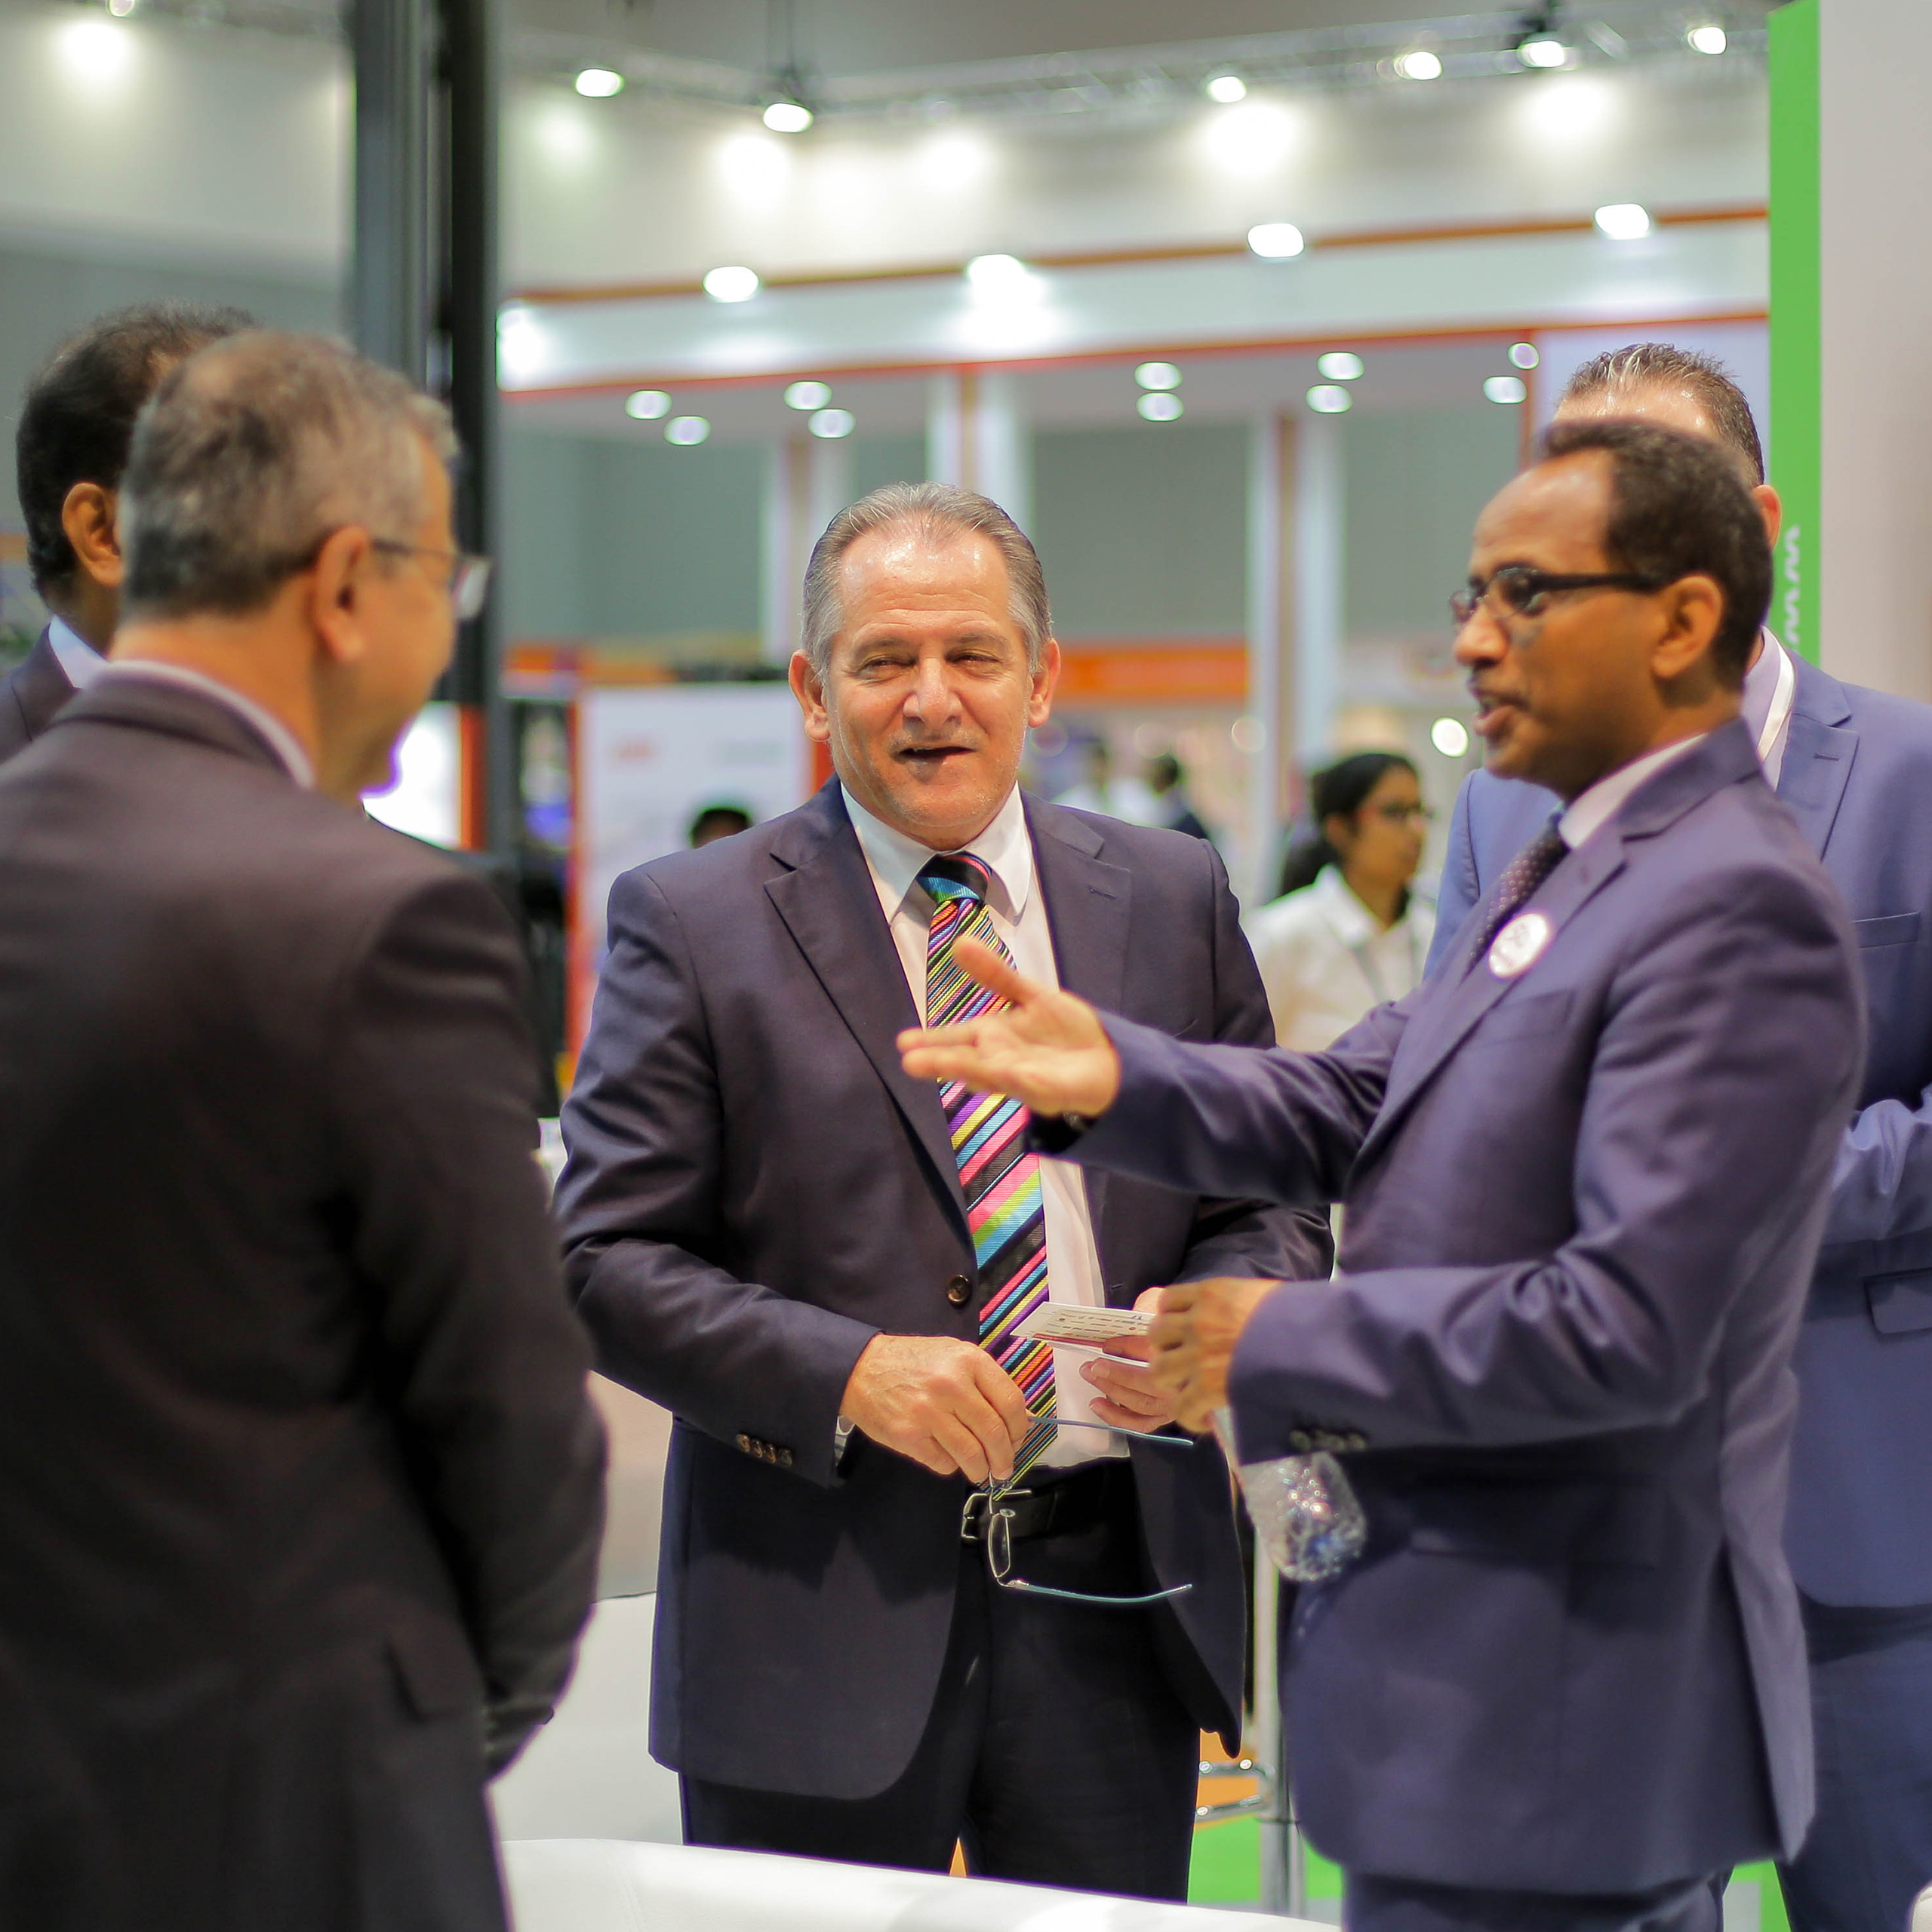 Materials Handling Middle East - Materials Handling Middle East 2017 concludes in Dubai